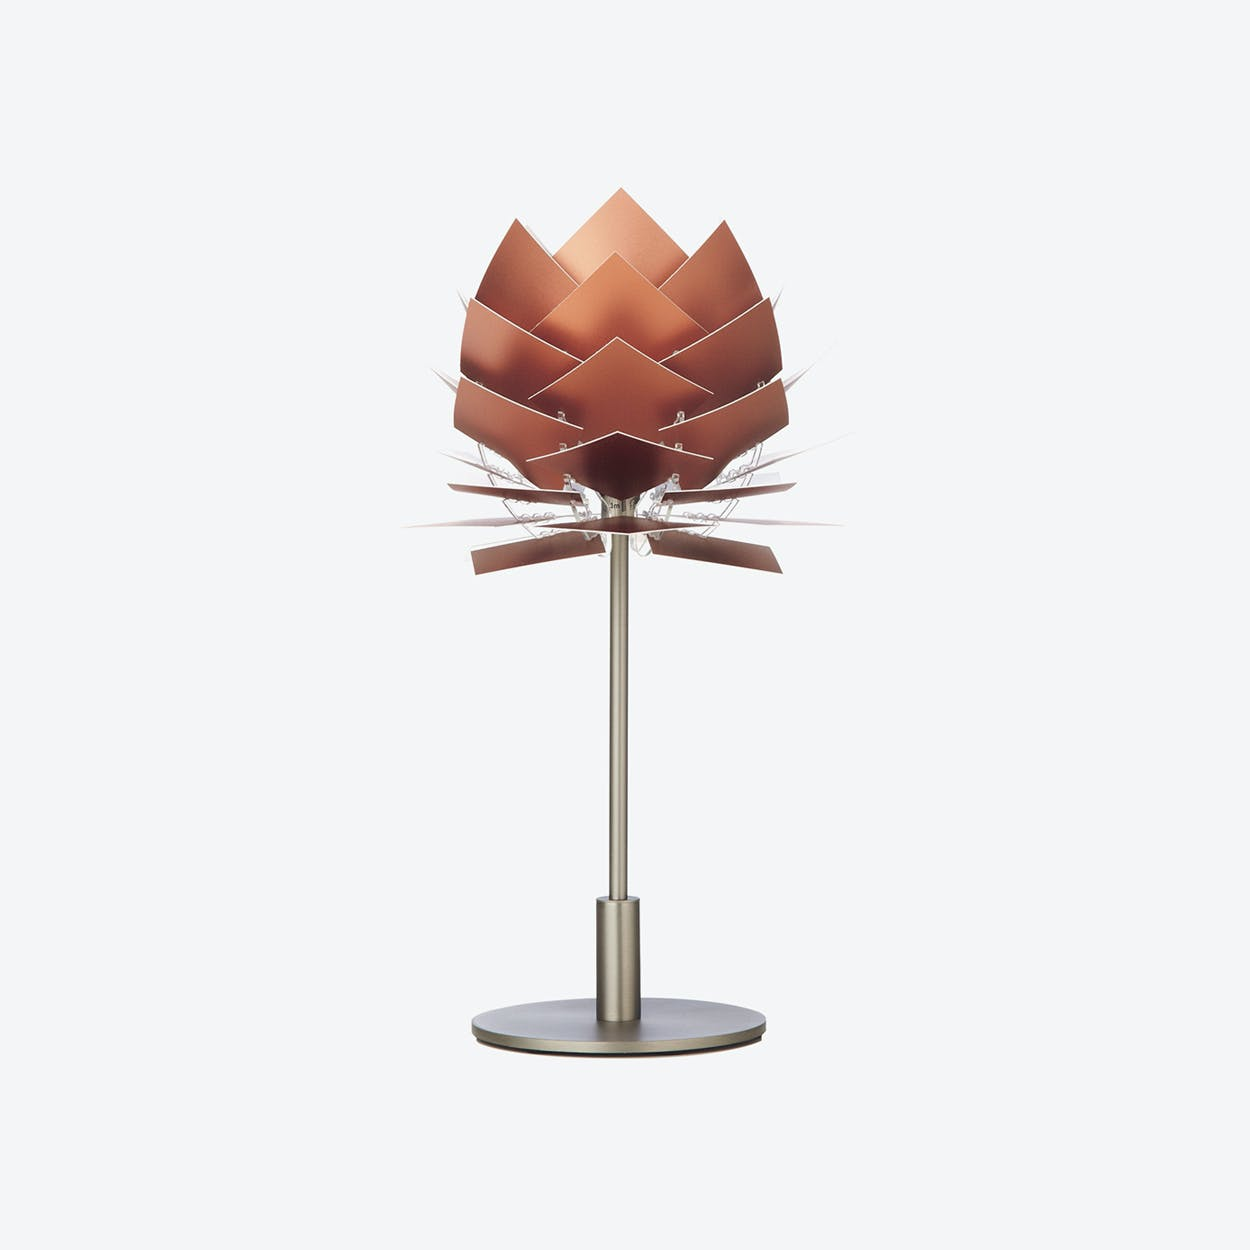 XS PineApple Table Lamp in Copper Look